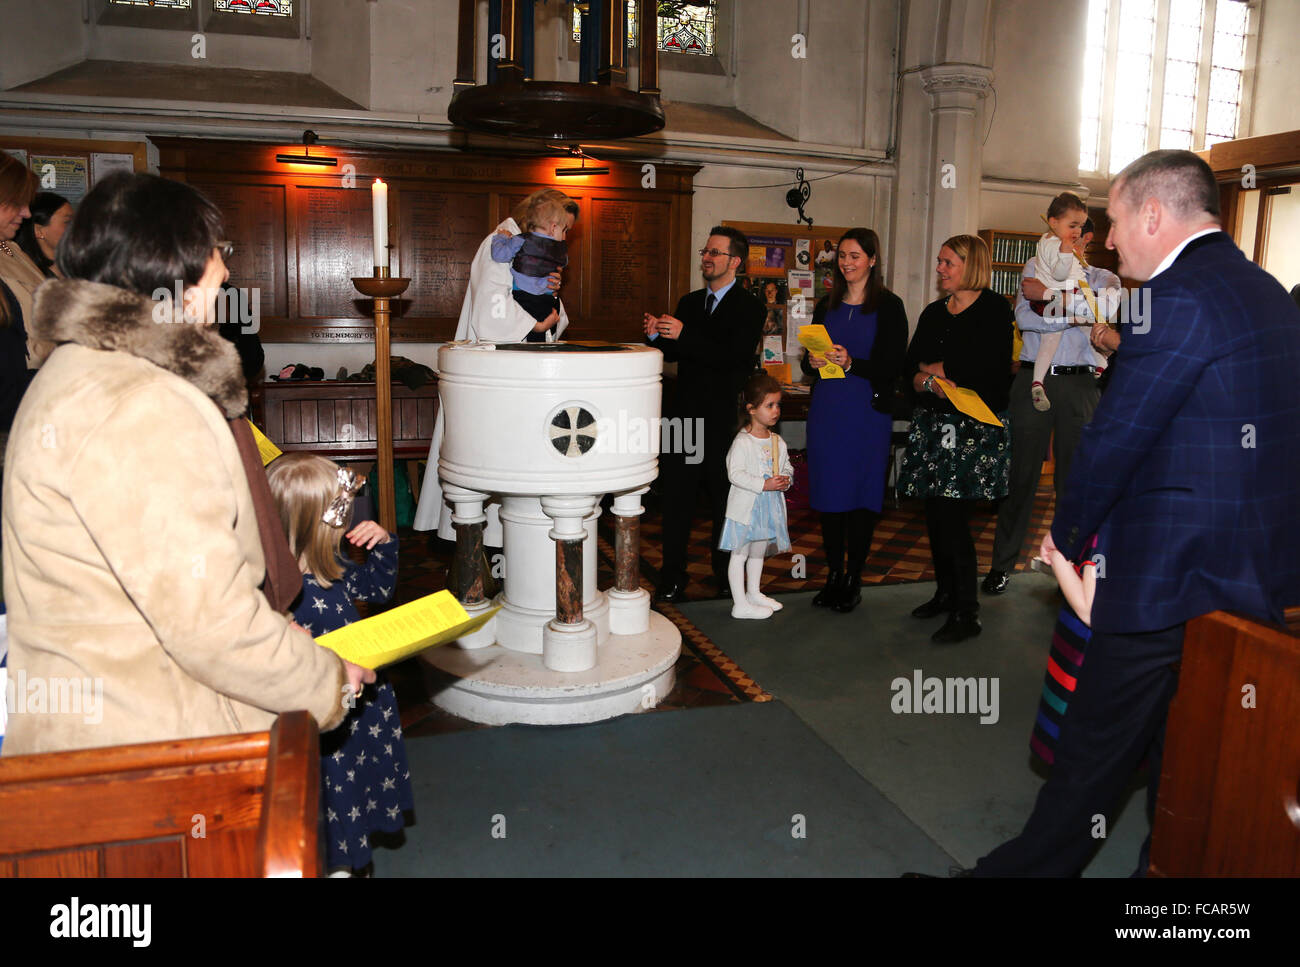 Christening At St Mary's Church Caterham On The Hill Surrey England Female Priest Holding Baby Boy By Font - Stock Image